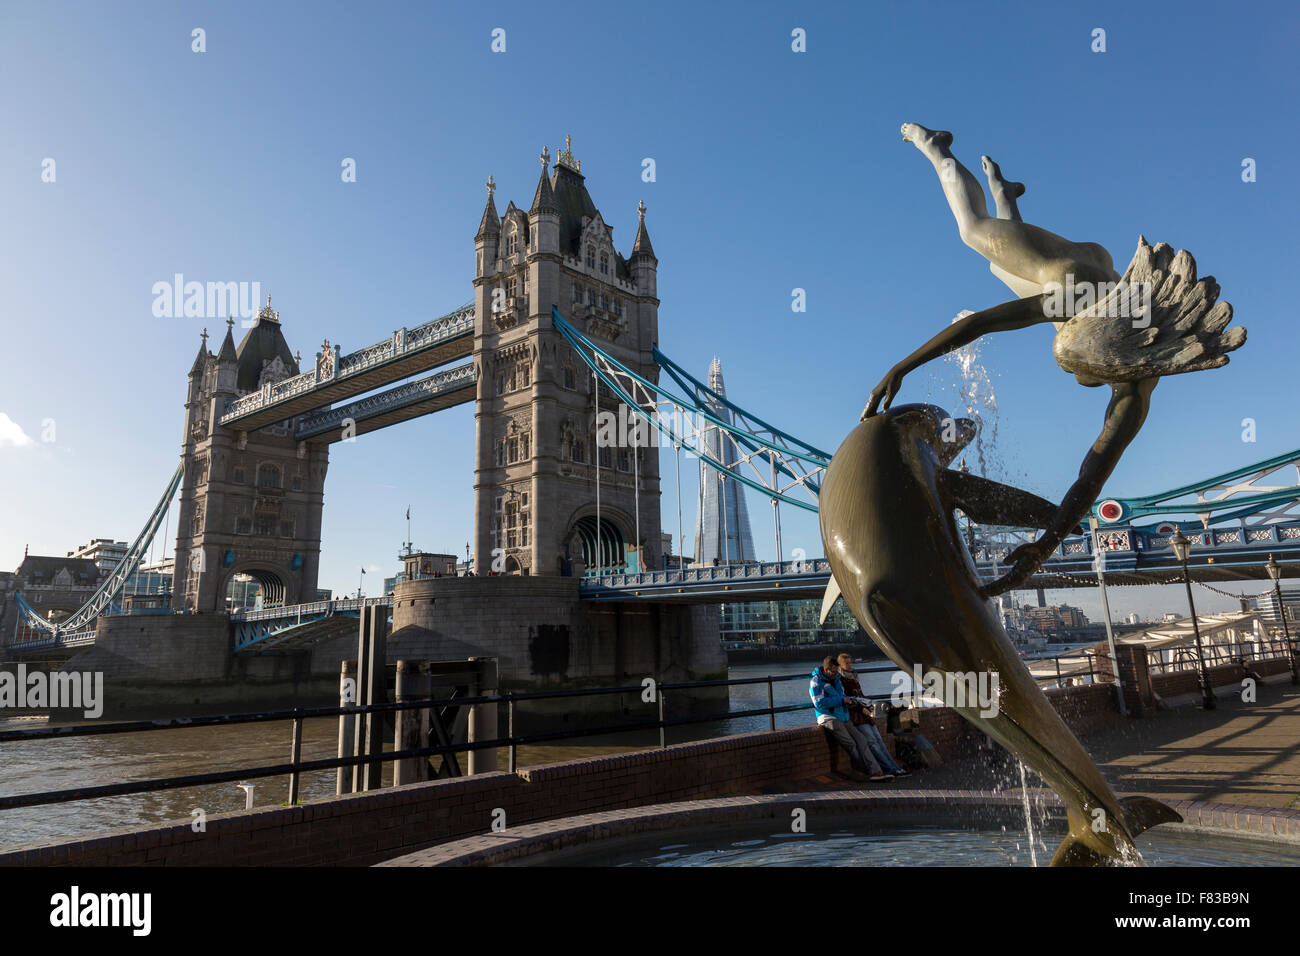 Girl and dolphin statue with Tower Bridge behind at London, UK Stock Photo